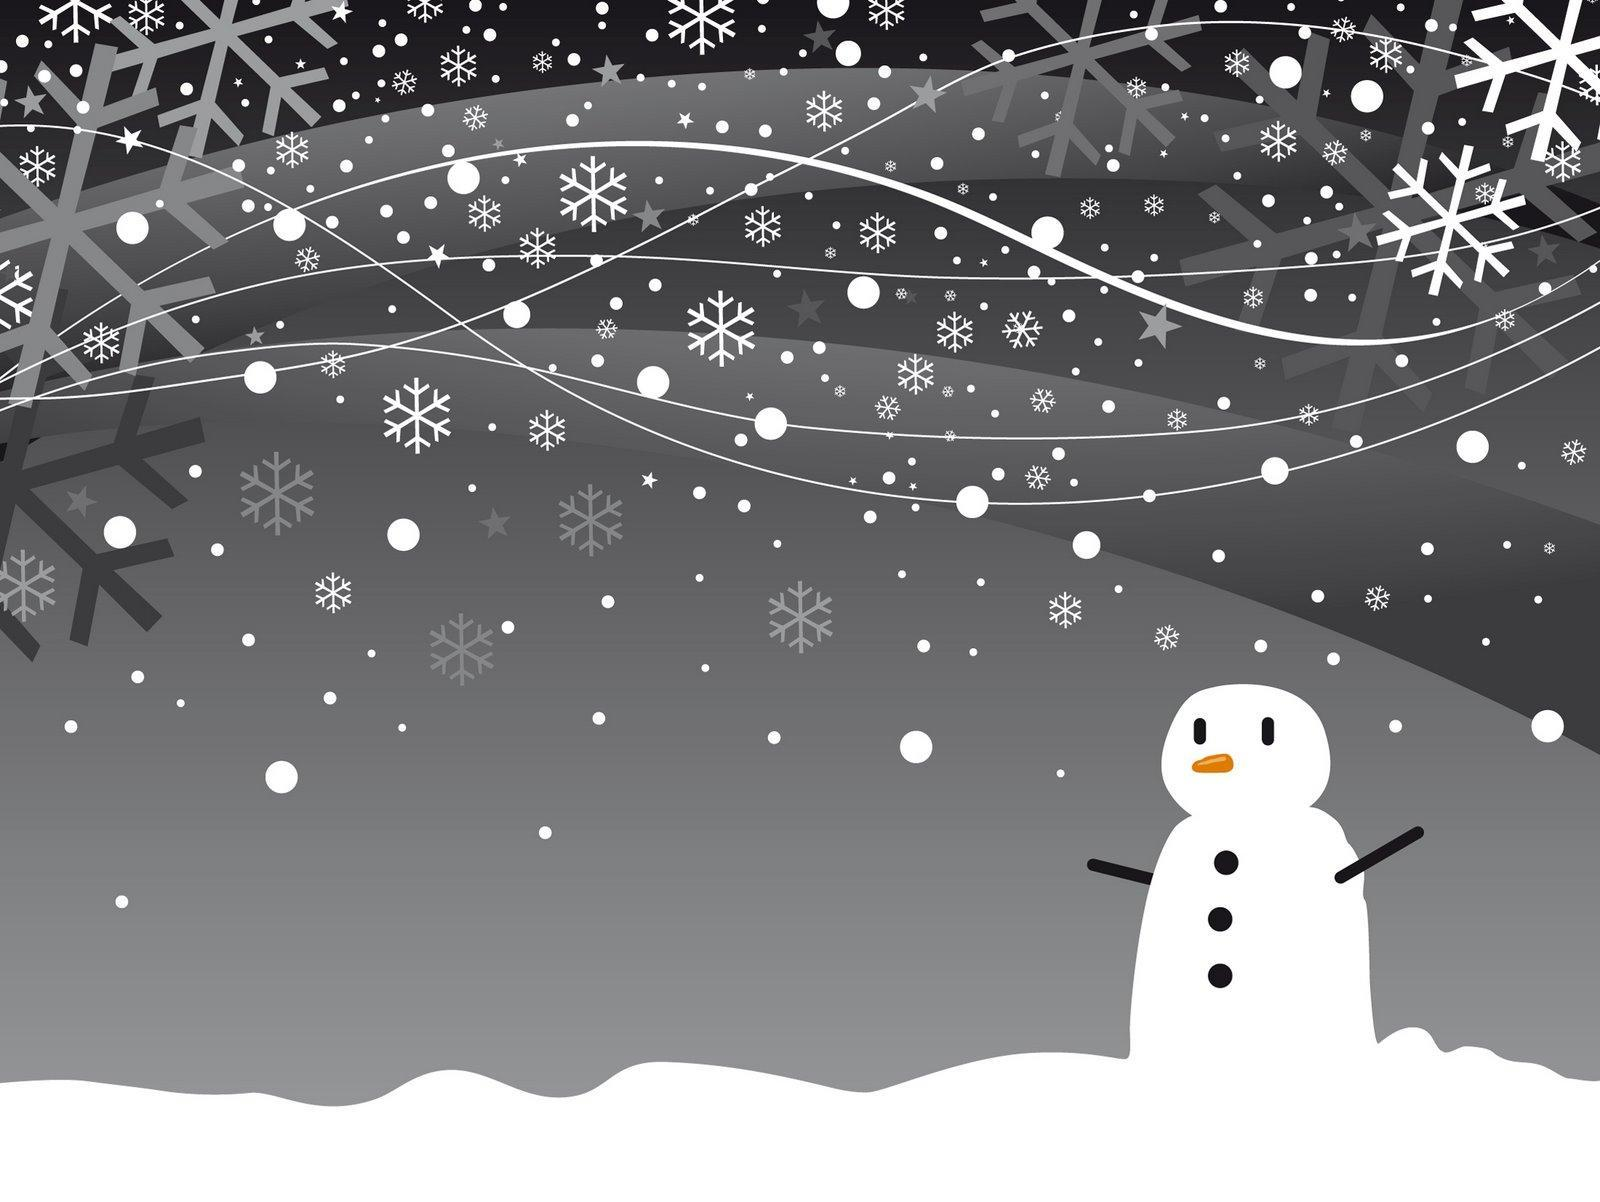 snowflake backgrounds wallpaper cave